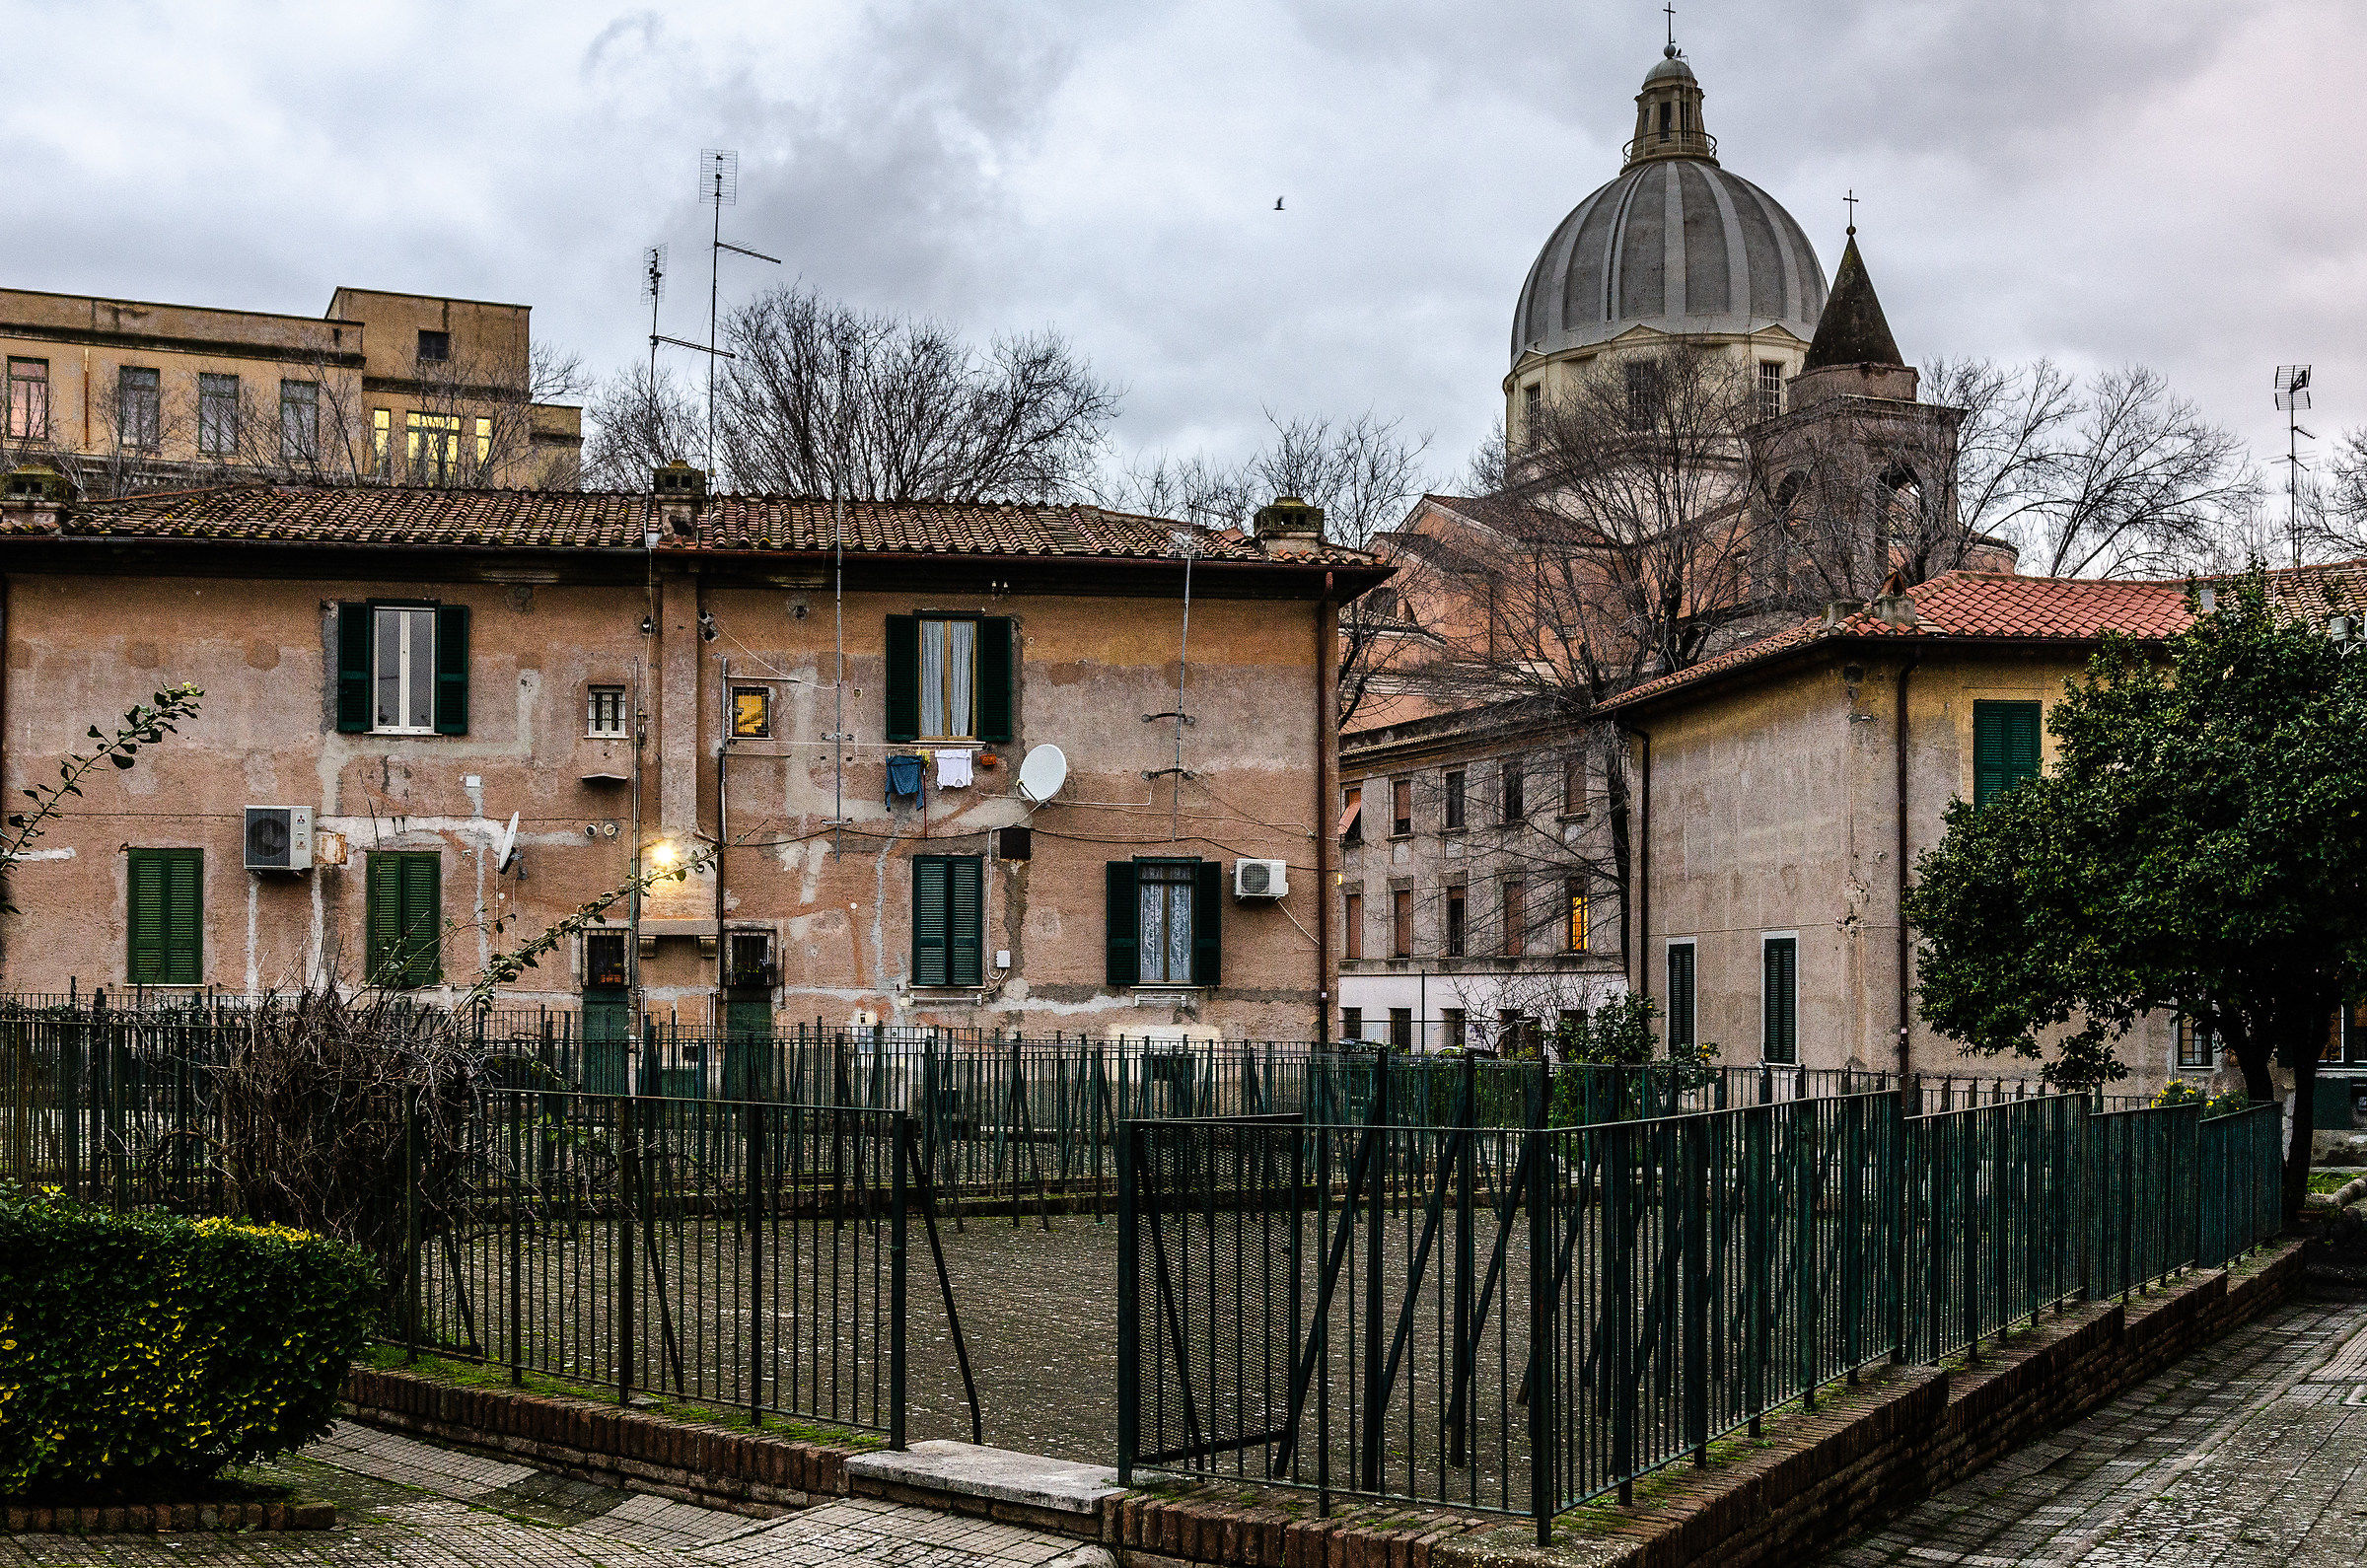 Lost in the alleys of a vanished Rome...